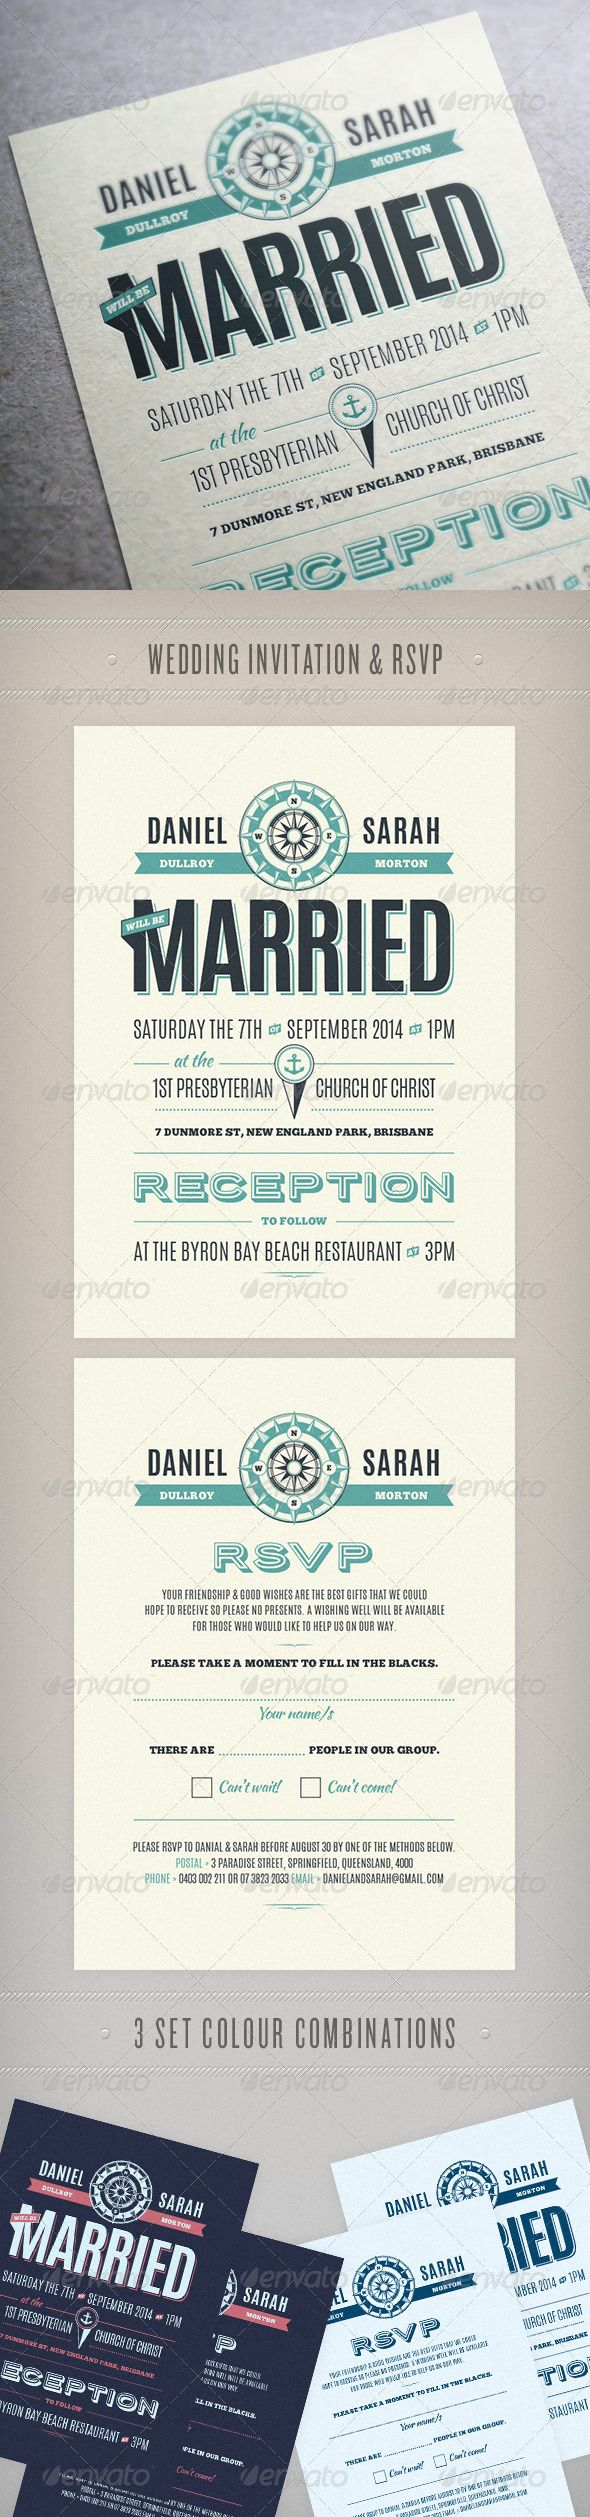 Wedding Invitation & RSVP in 3 colour combinations.  Size: 105mm wide x 148mm highBleed Area: 3mmColor: CMYK  Fonts used in the de